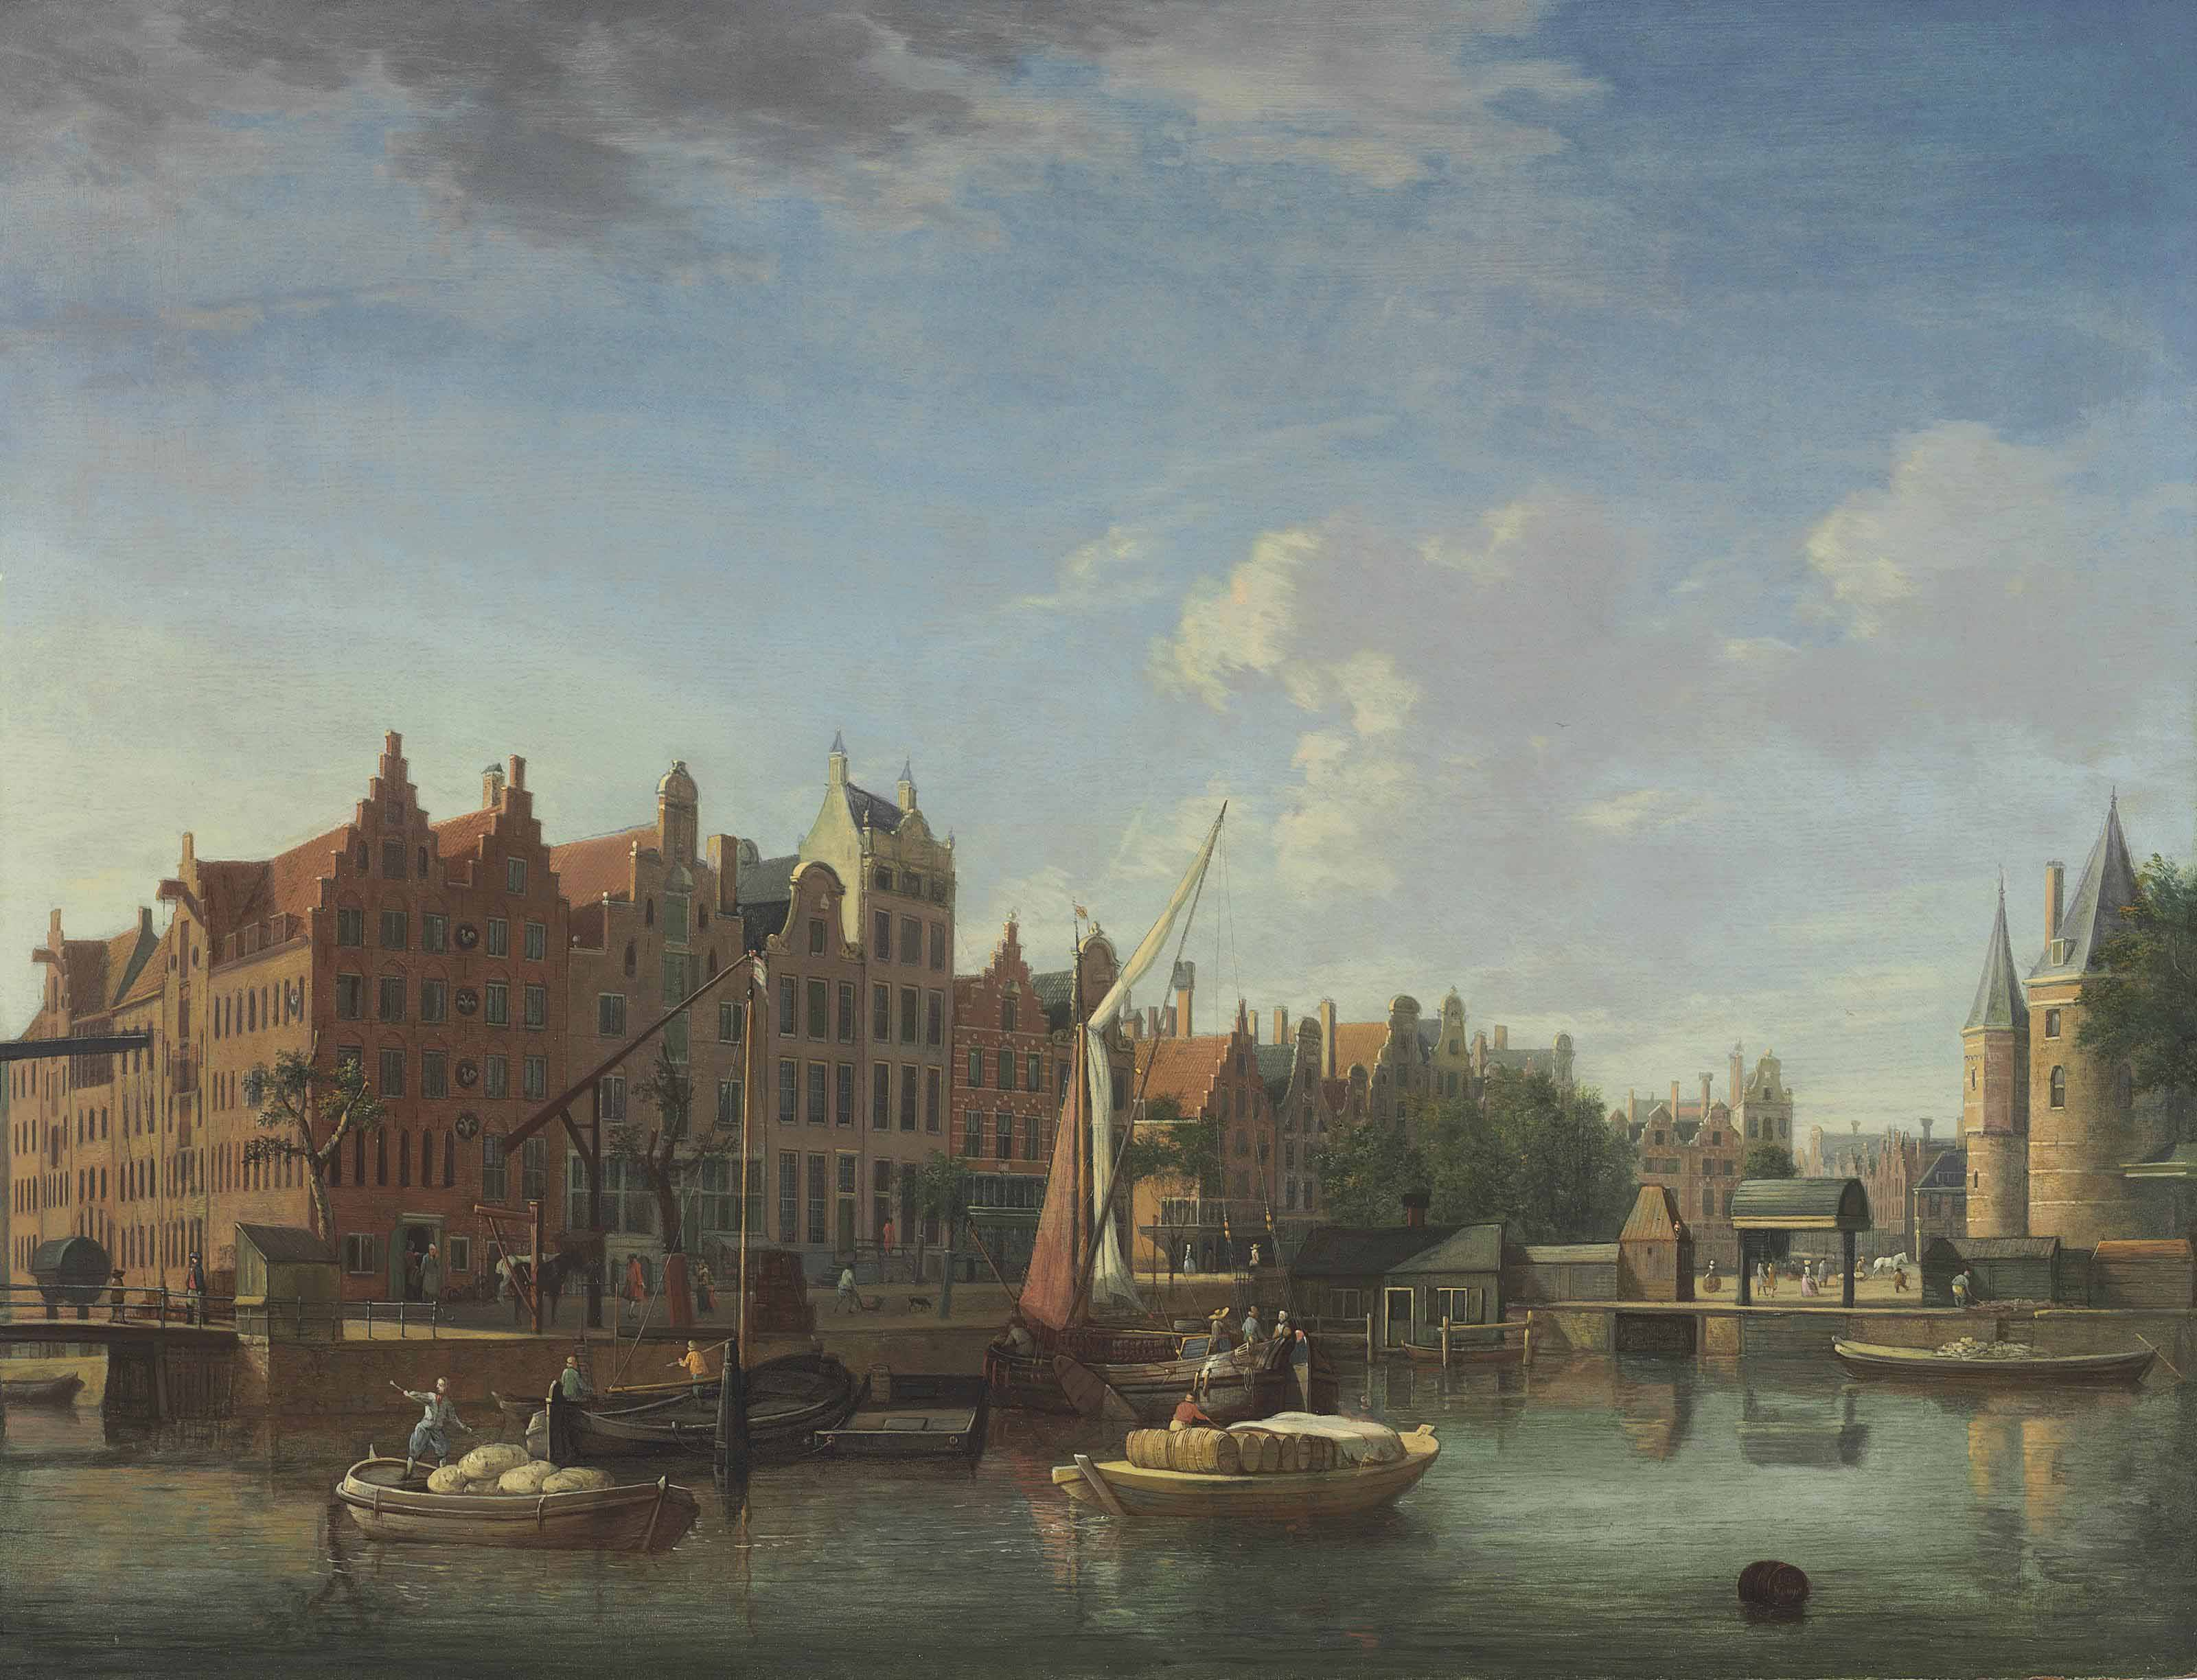 The Gelderse Kade, the Haan and Sleutels Brewery, and the Waag, Amsterdam